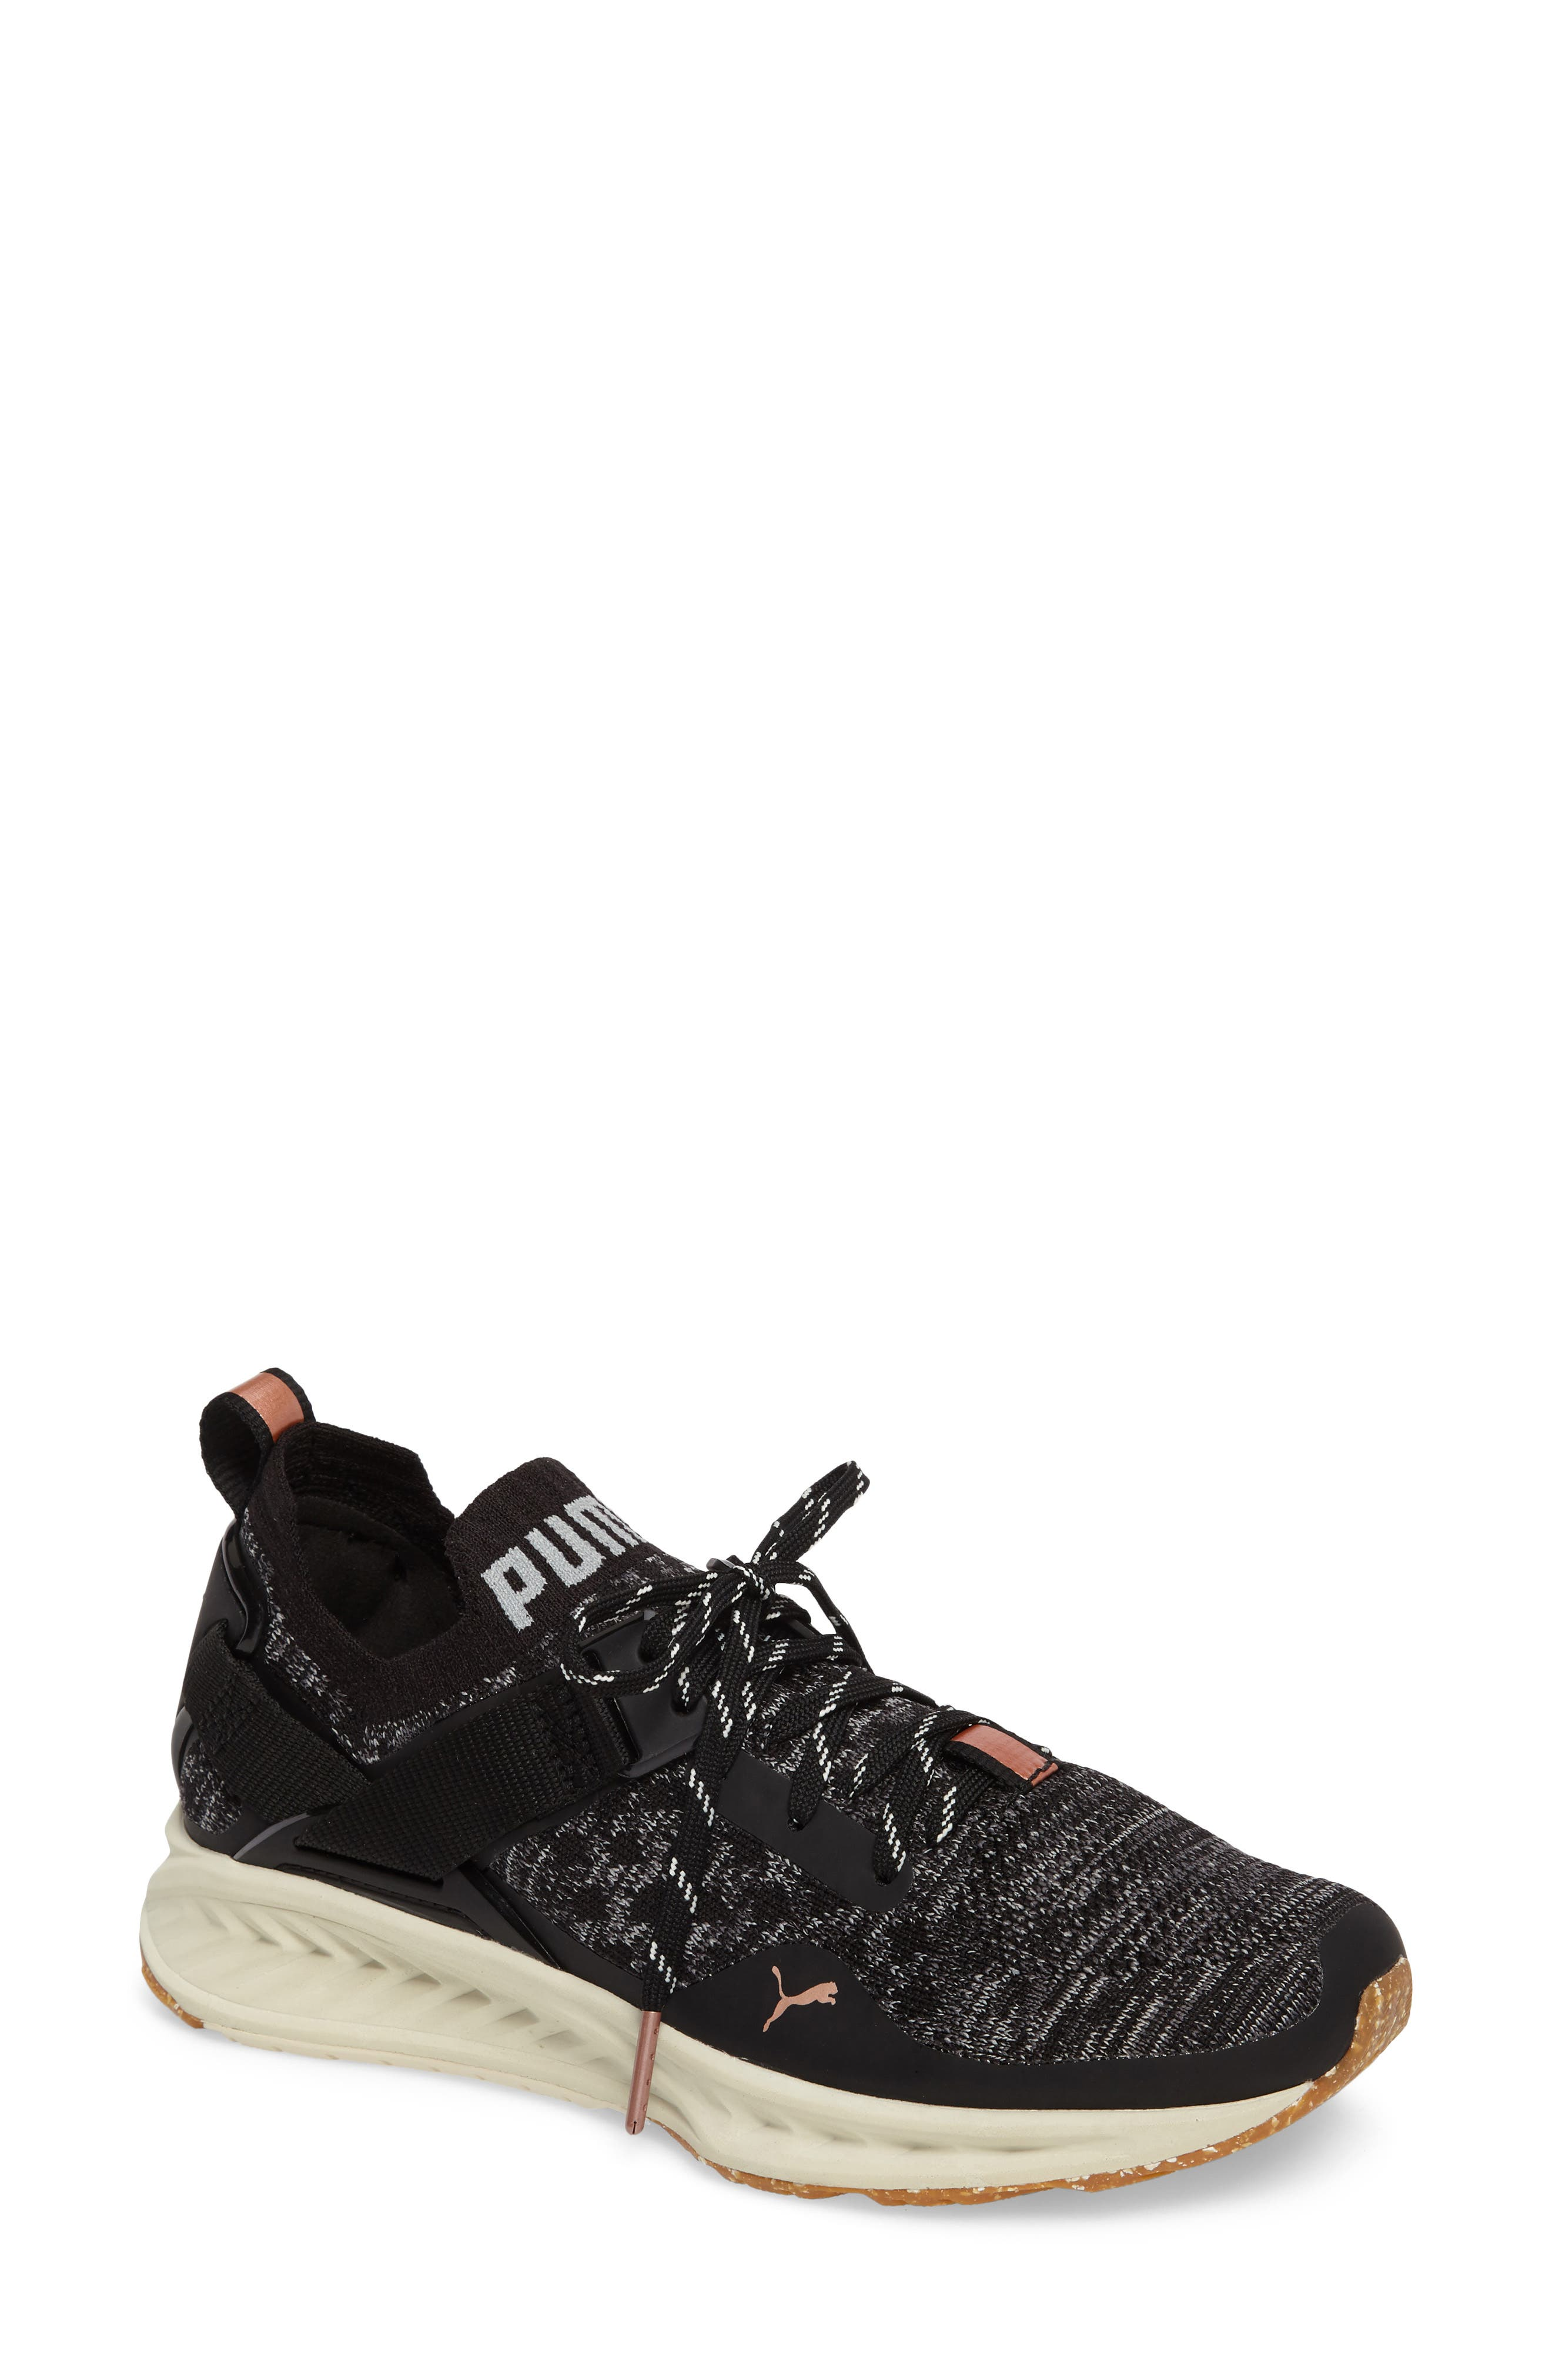 PUMA IGNITE evoKNIT Low Sneaker (Women)